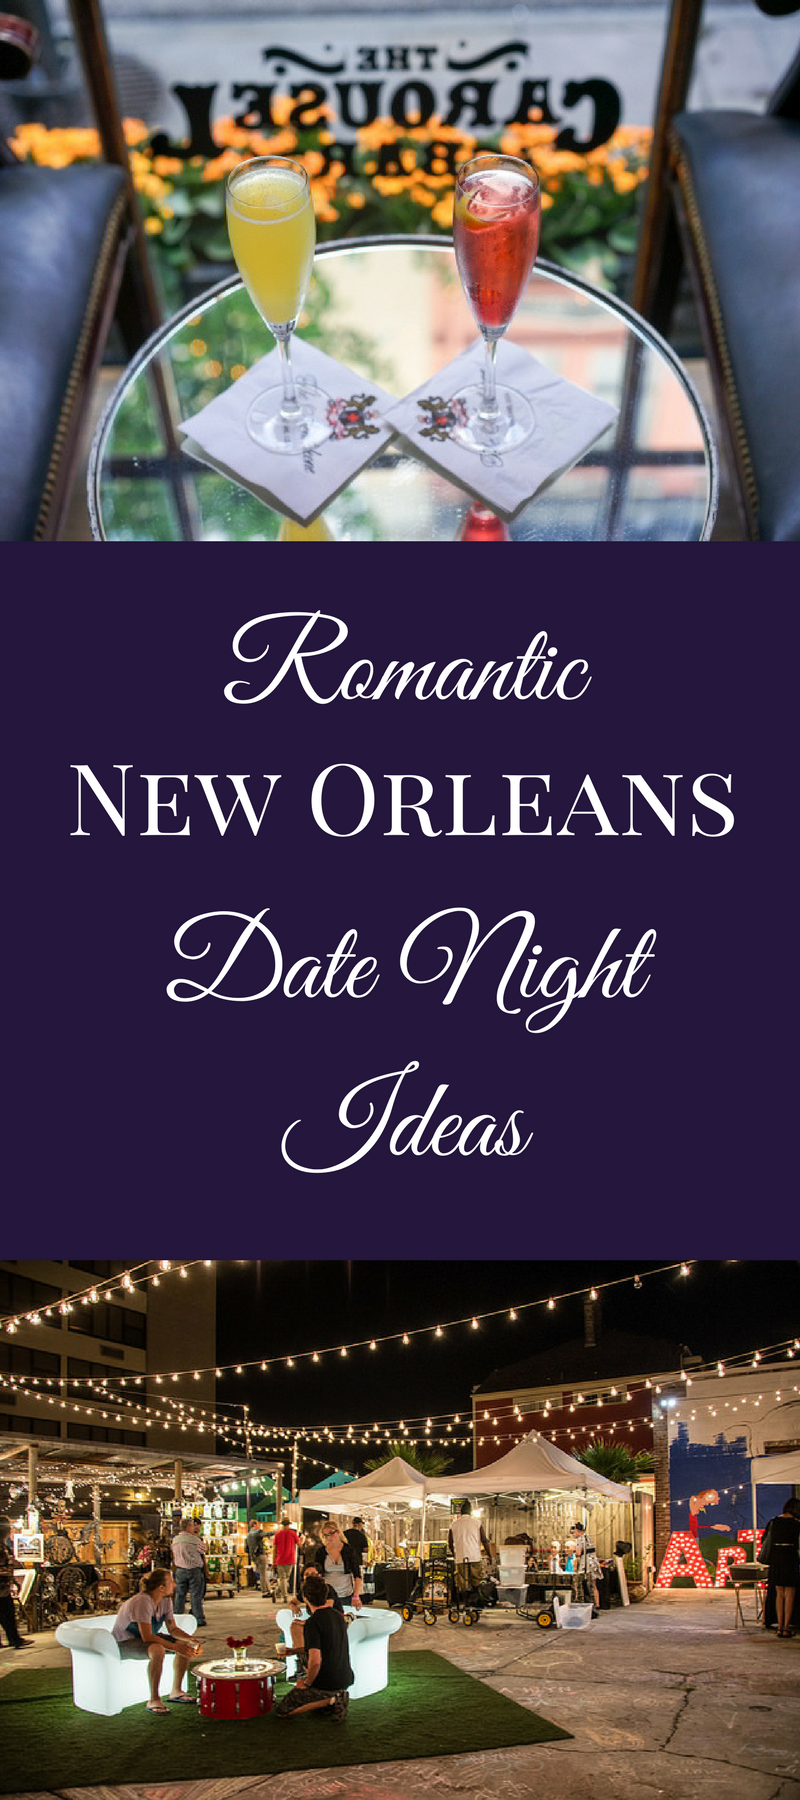 Exploring the French Quarter with your sweetheart? Try these 7 romantic date night ideas to help you craft your own intimate New Orleans evening!